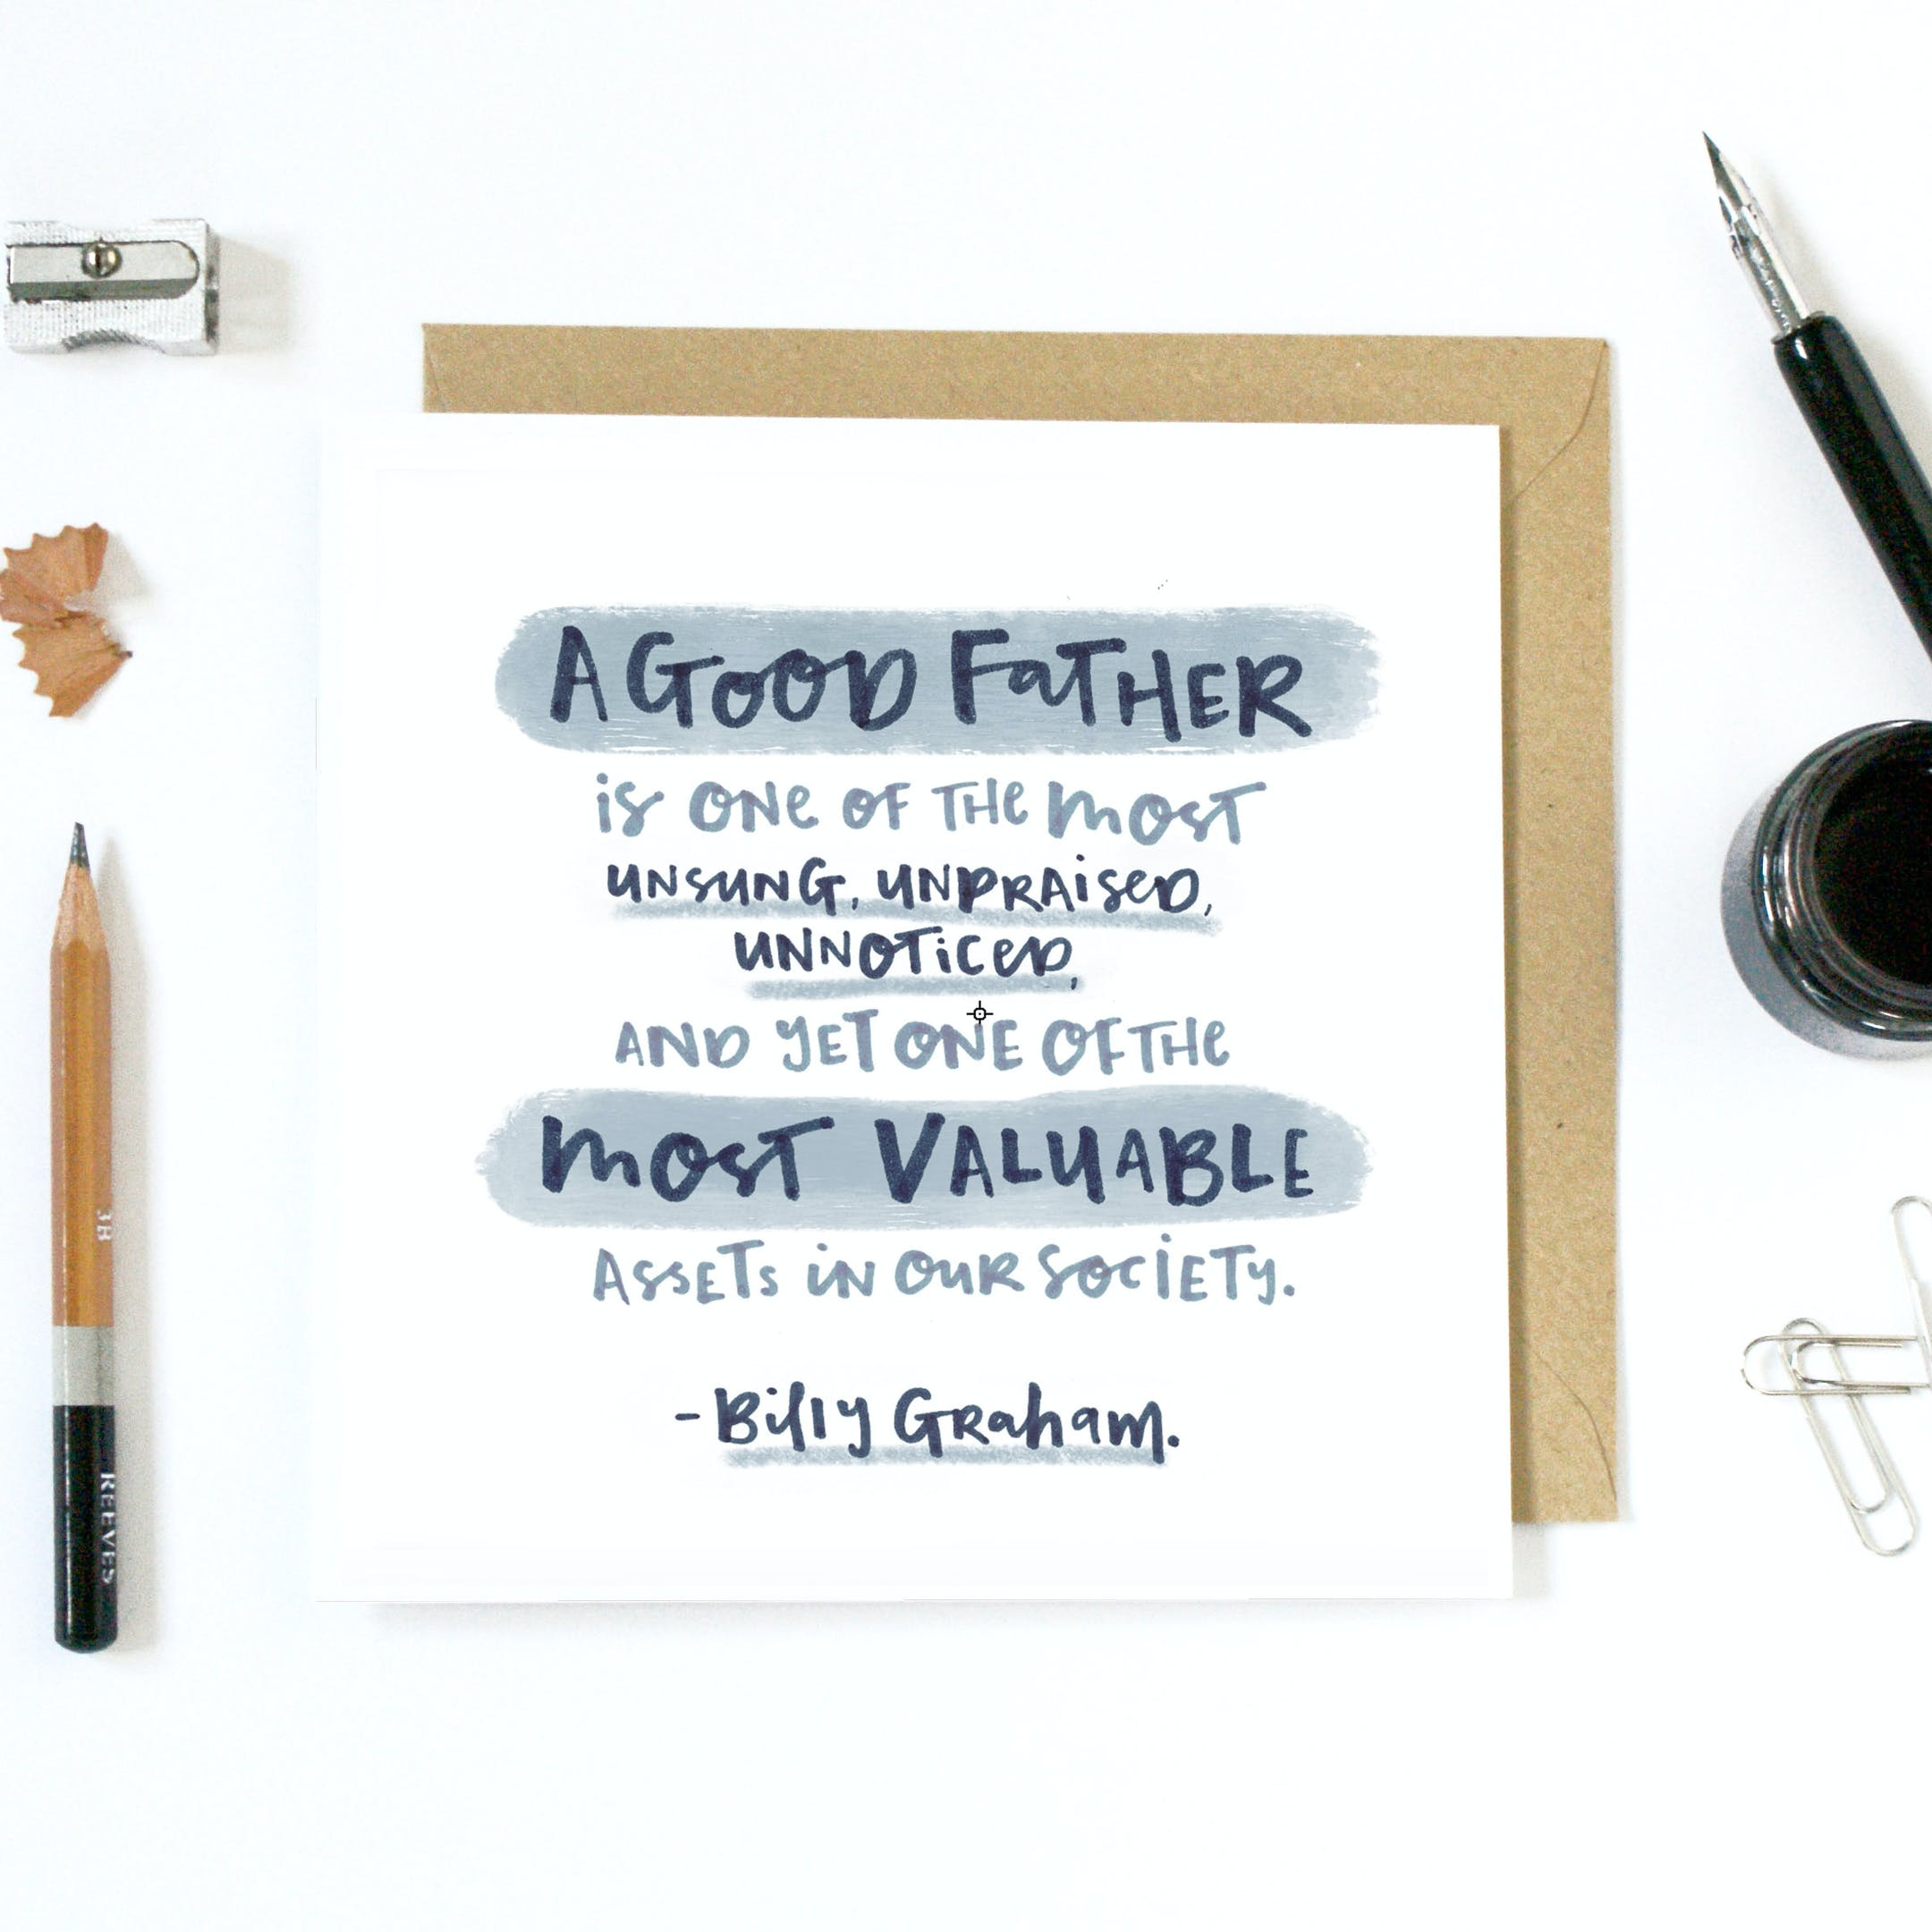 A Good Father Billy Graham Quote Card by Nap time illustration at Cheerfully Given